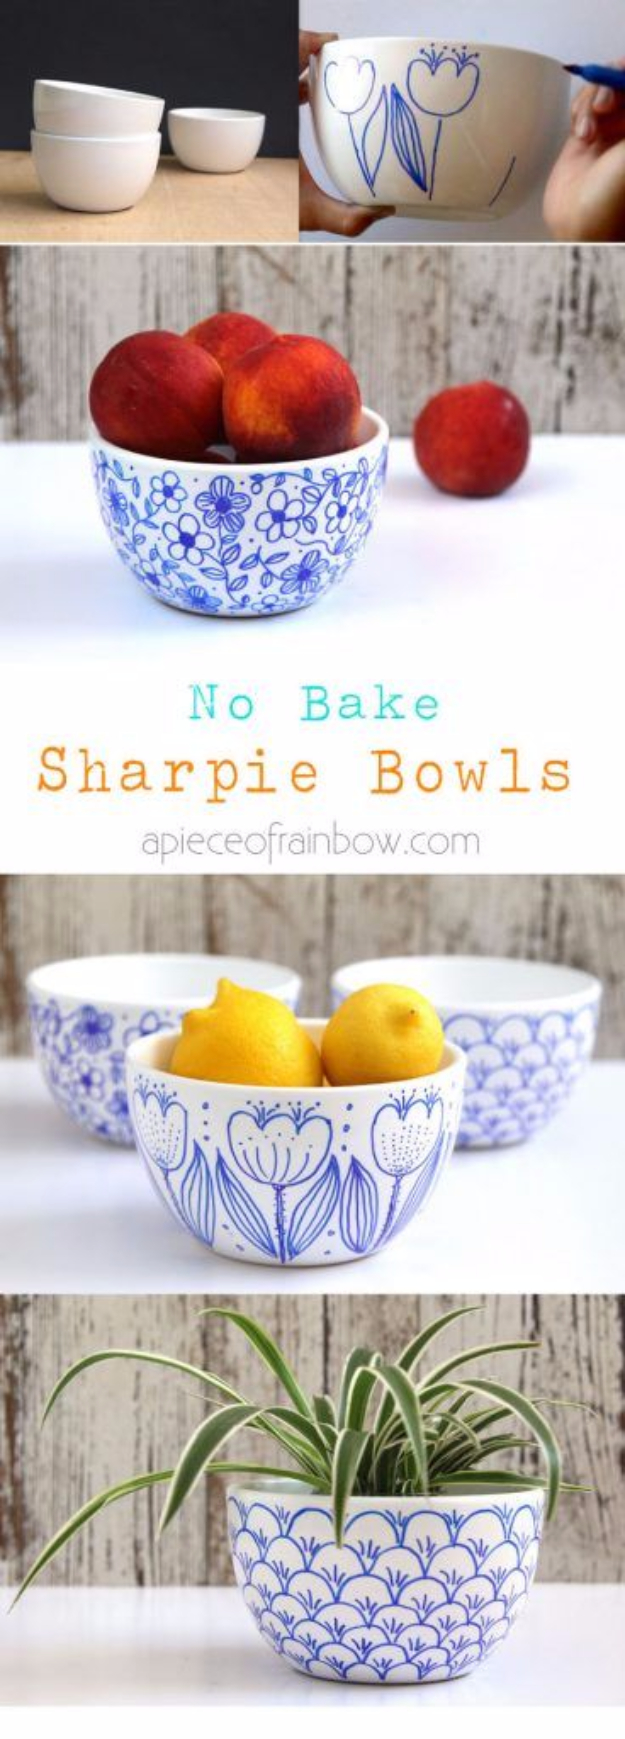 DIY Sharpie Crafts - DIY No Bake Sharpie Art Bowls - Cool and Easy Craft Projects and DIY Ideas Using Sharpies - Use Markers To Decorate and Design Home Decor, Cool Homemade Gifts, T-Shirts, Shoes and Wall Art. Creative Project Tutorials for Teens, Kids and Adults http://diyjoy.com/diy-sharpie-crafts